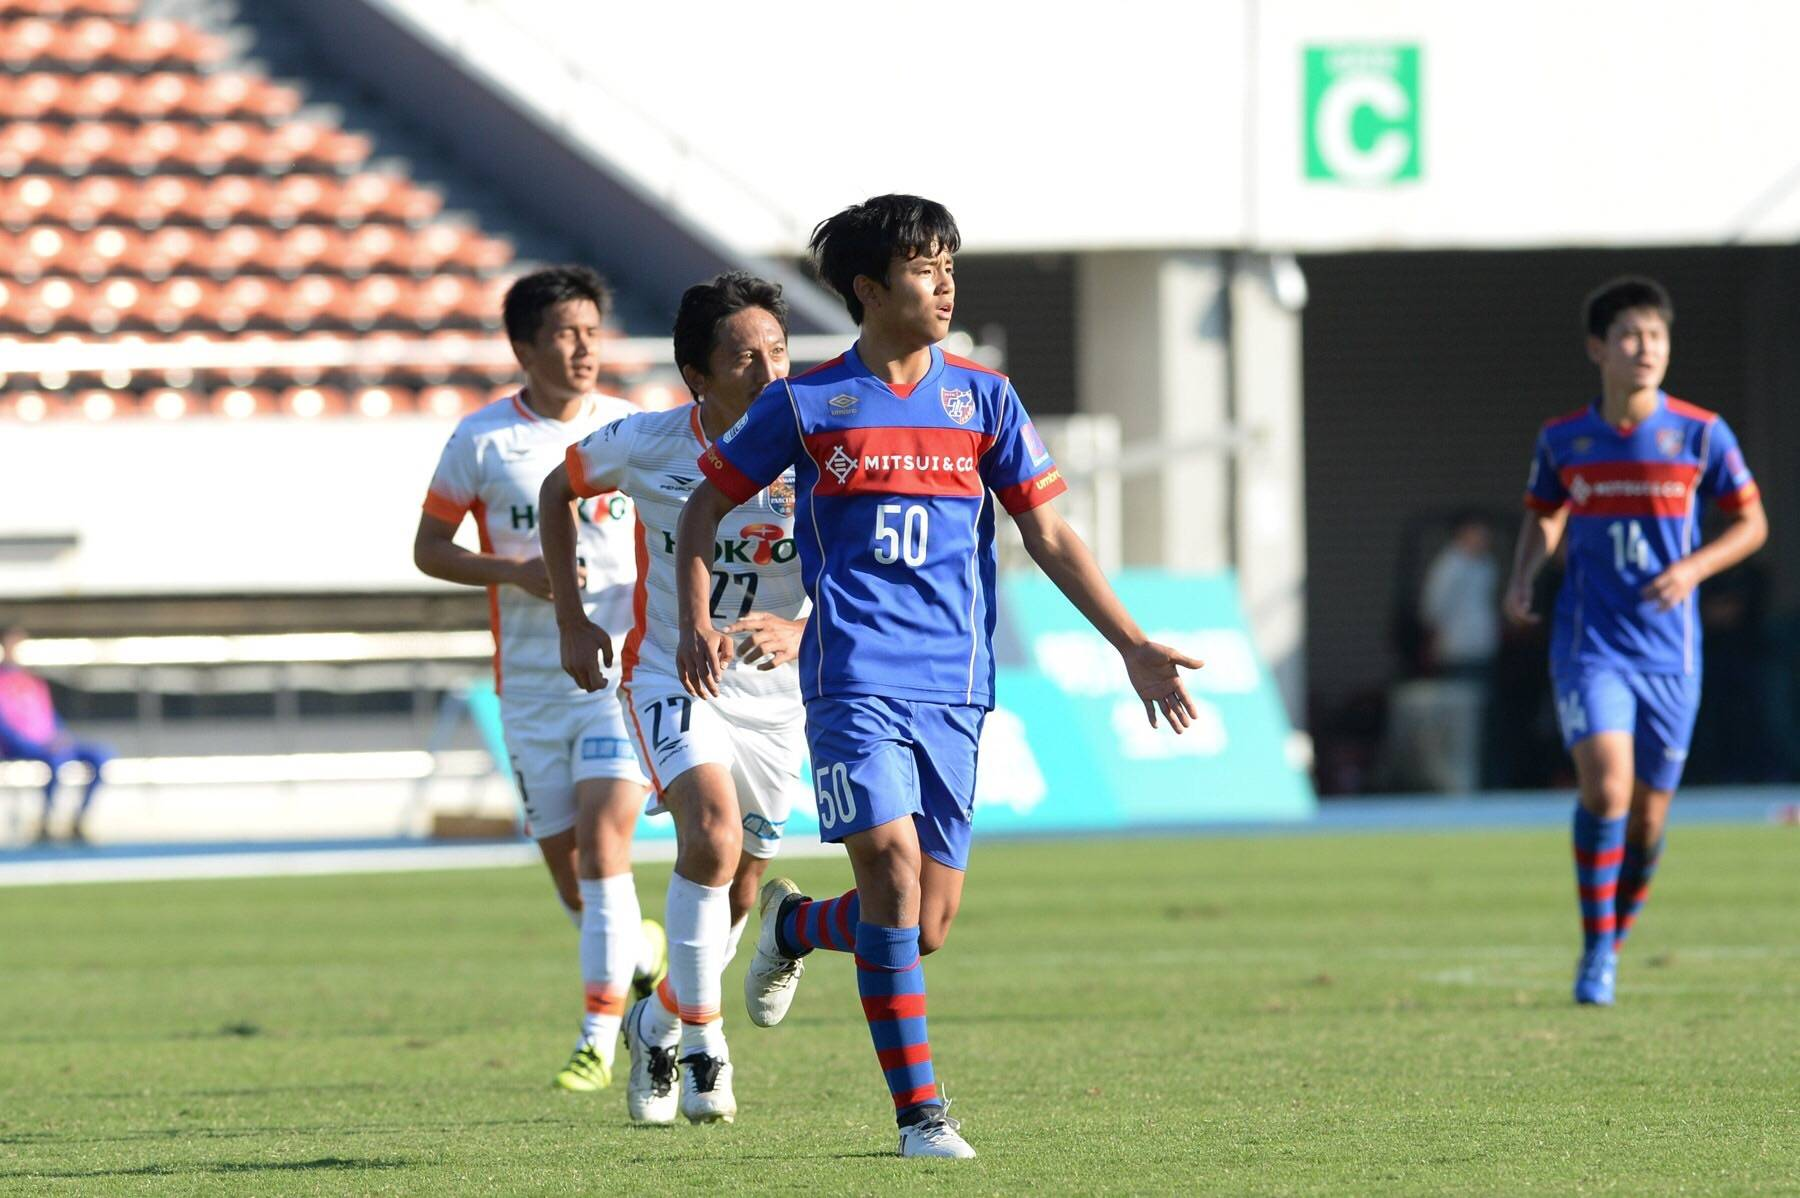 15-year-old Kubo shatters J.League scoring record